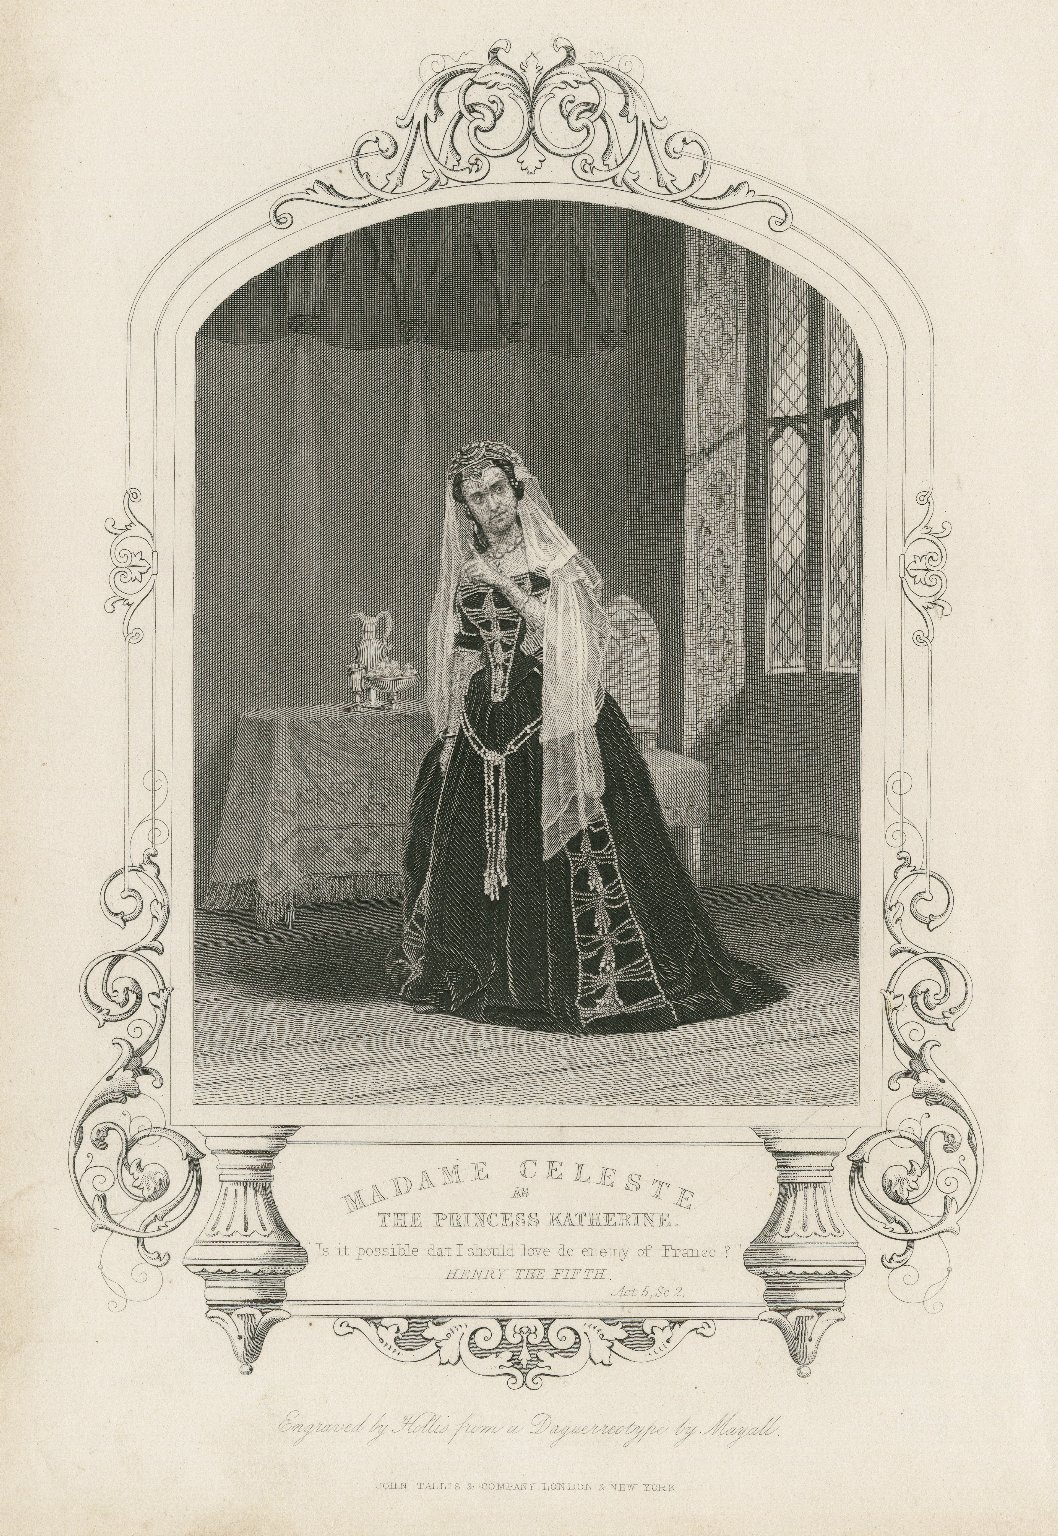 Madame Celeste as the Princess Katherine ... [graphic] / engraved by Hollis from a daguerreotype by Mayall.